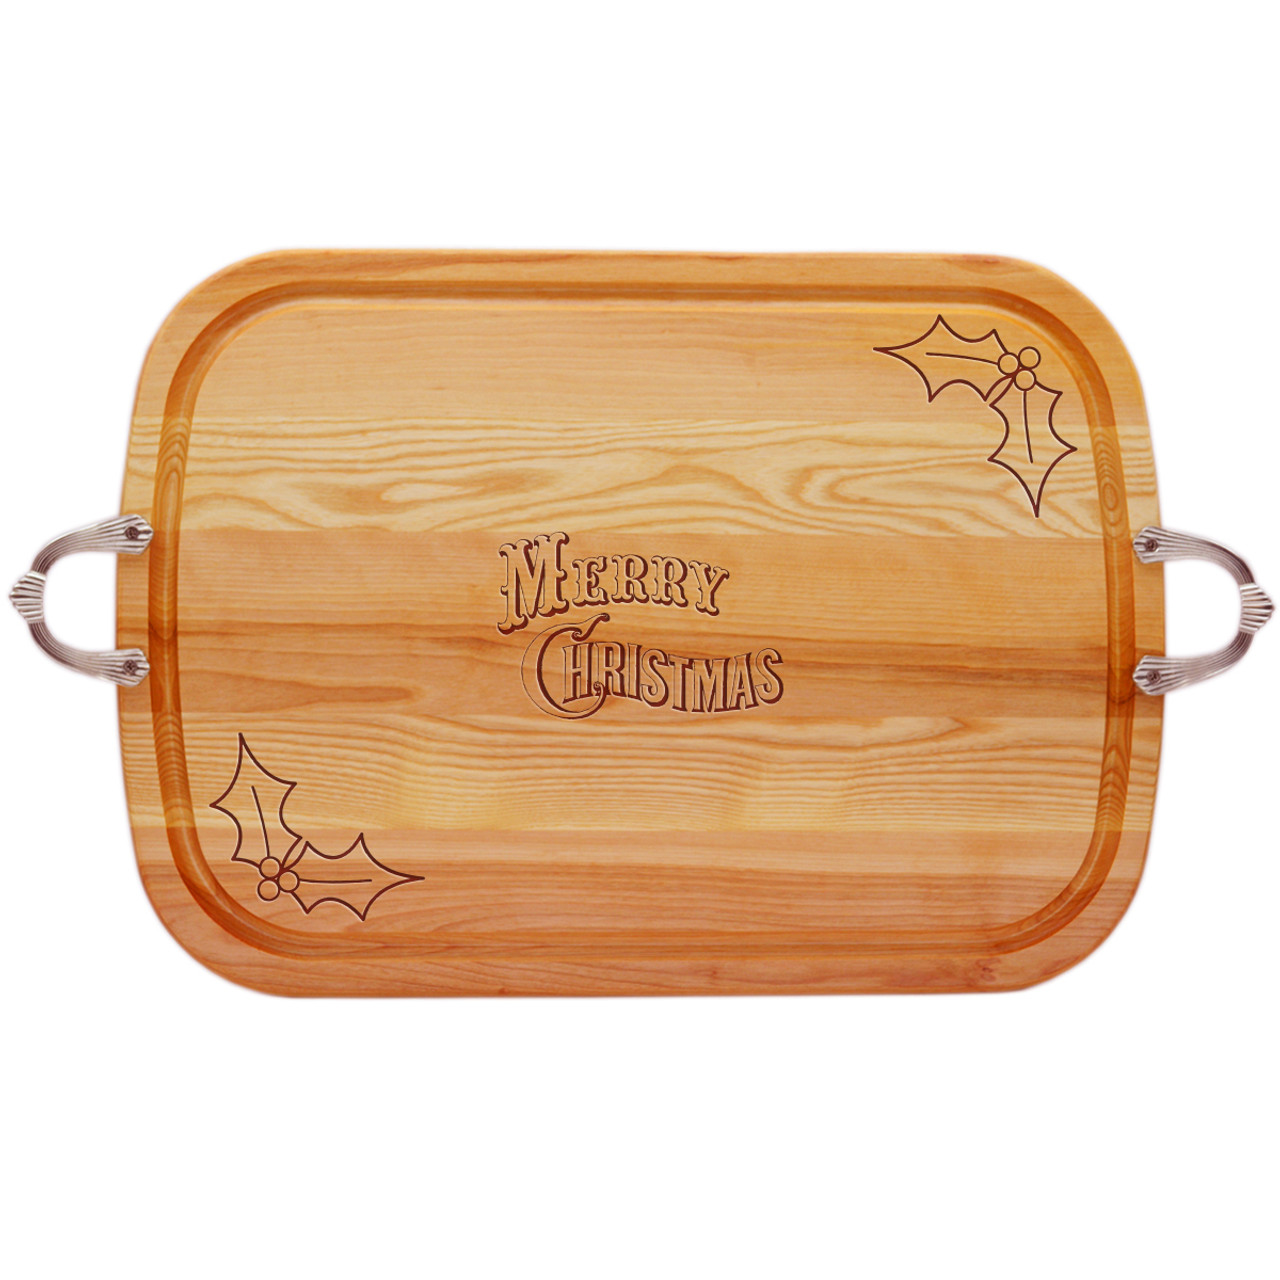 Christmas With Holly.Everyday Collection Large Serving Tray With Nouveau Handles Merry Christmas With Holly